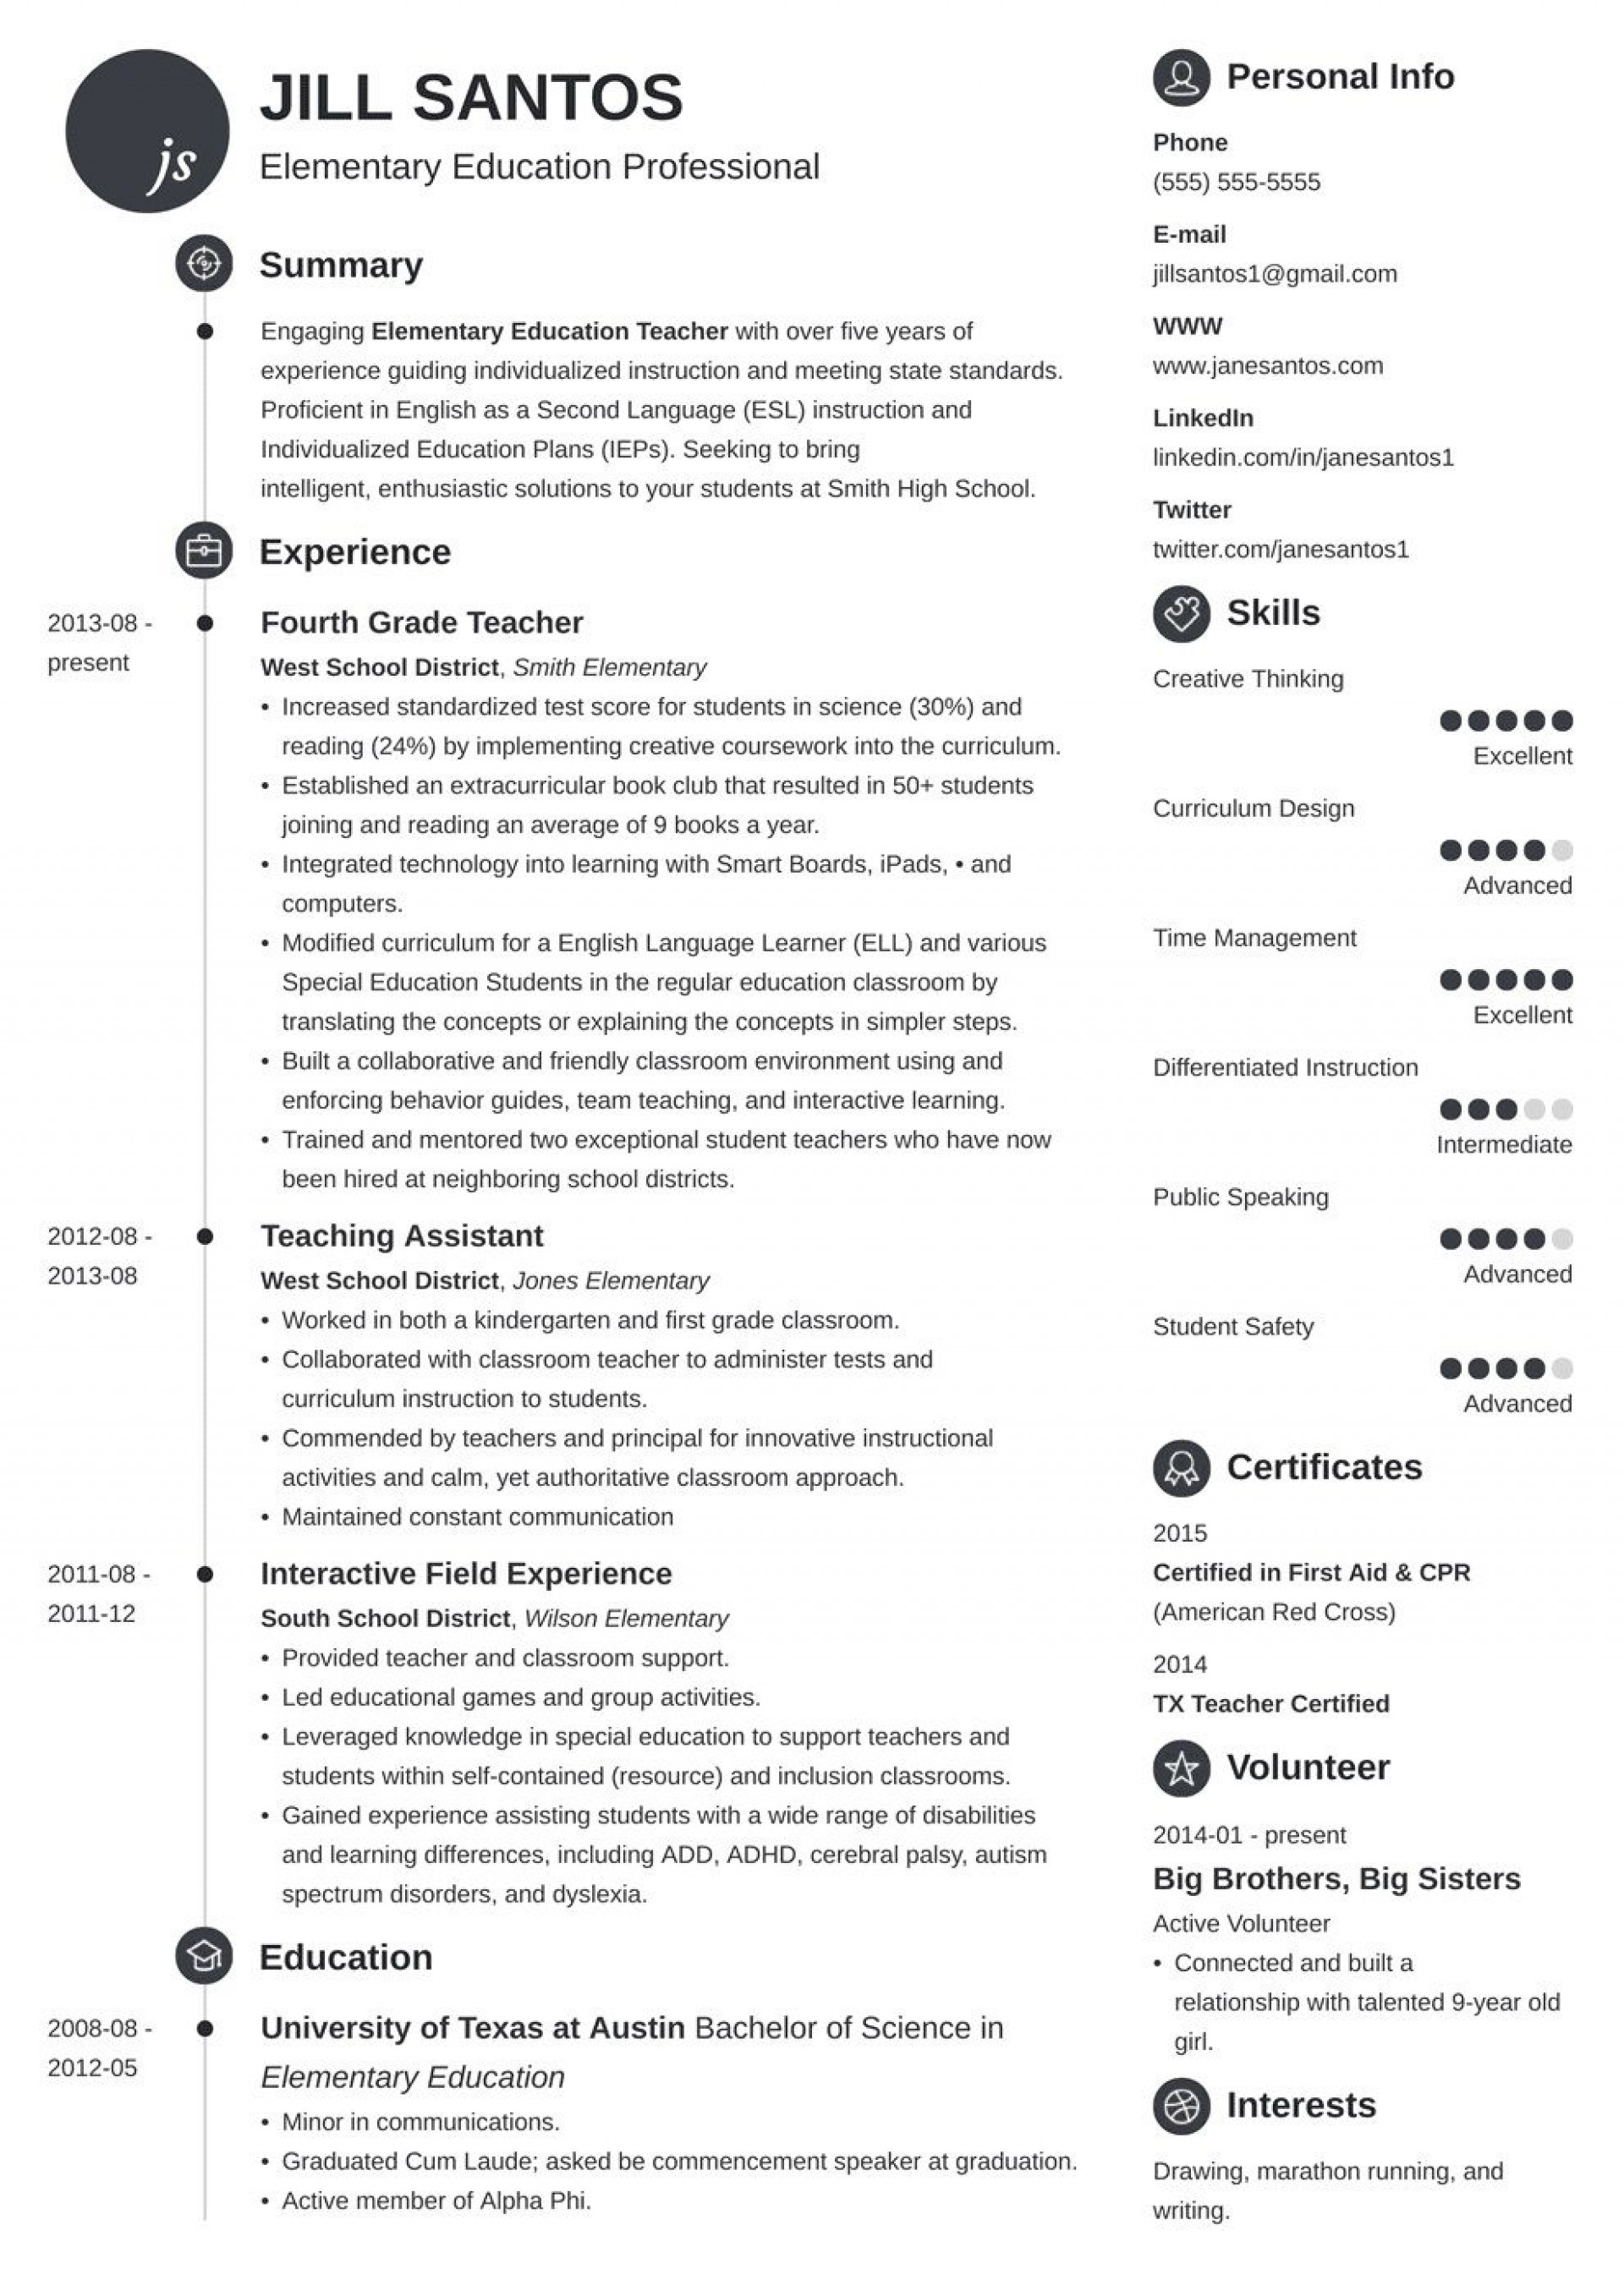 006 Outstanding Resume Template For Teaching Idea  Cv Job Application Assistant In Pakistan1920